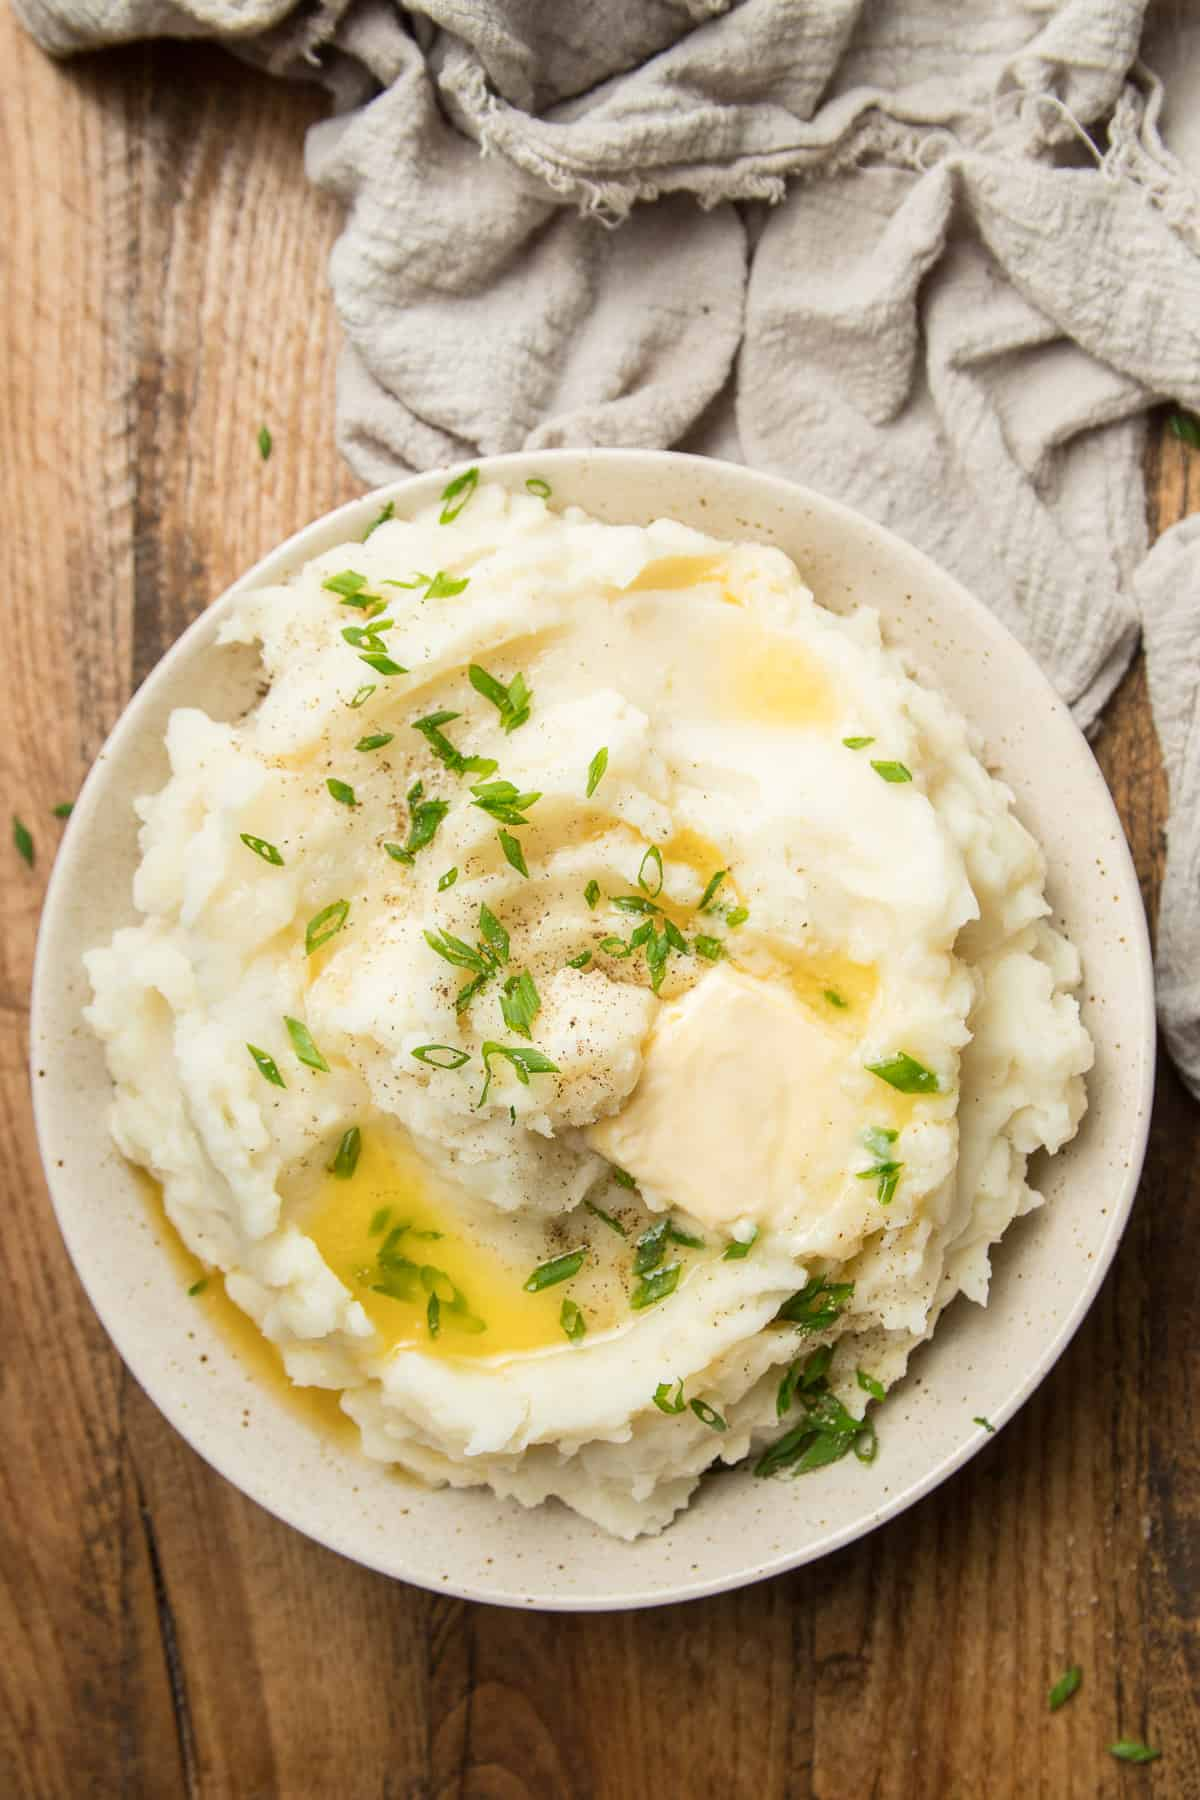 Bowl of Vegan Mashed Potatoes on a Wooden Surface